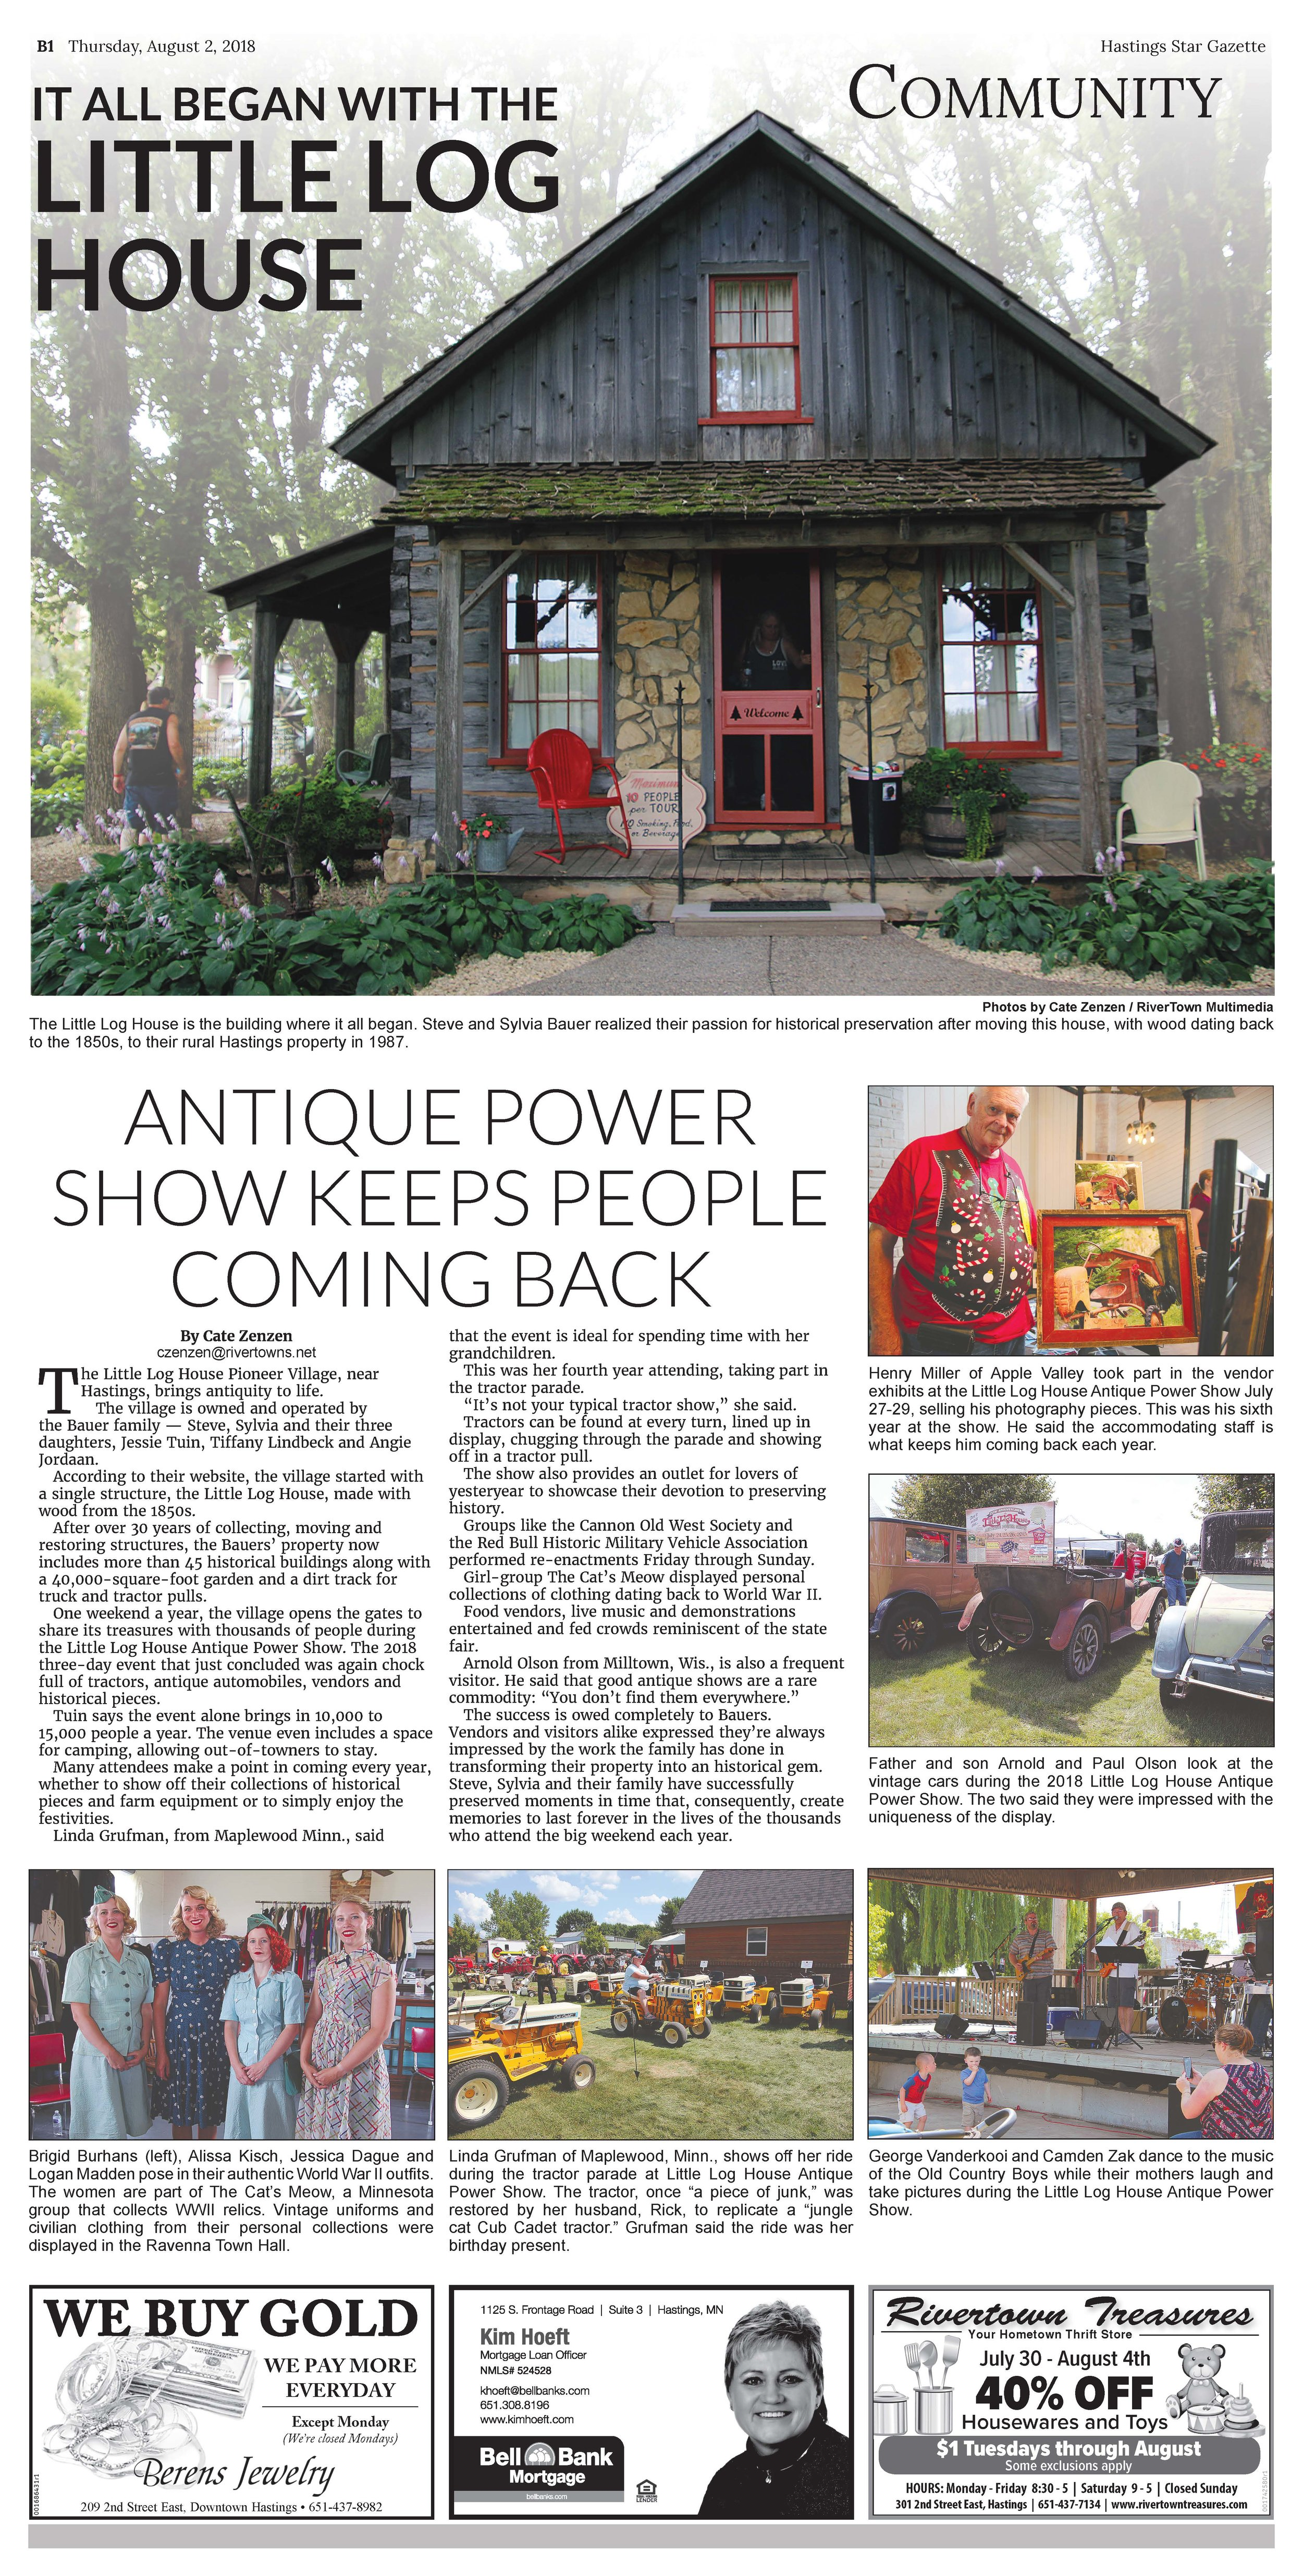 - Features cover of The Hastings Star Gazette